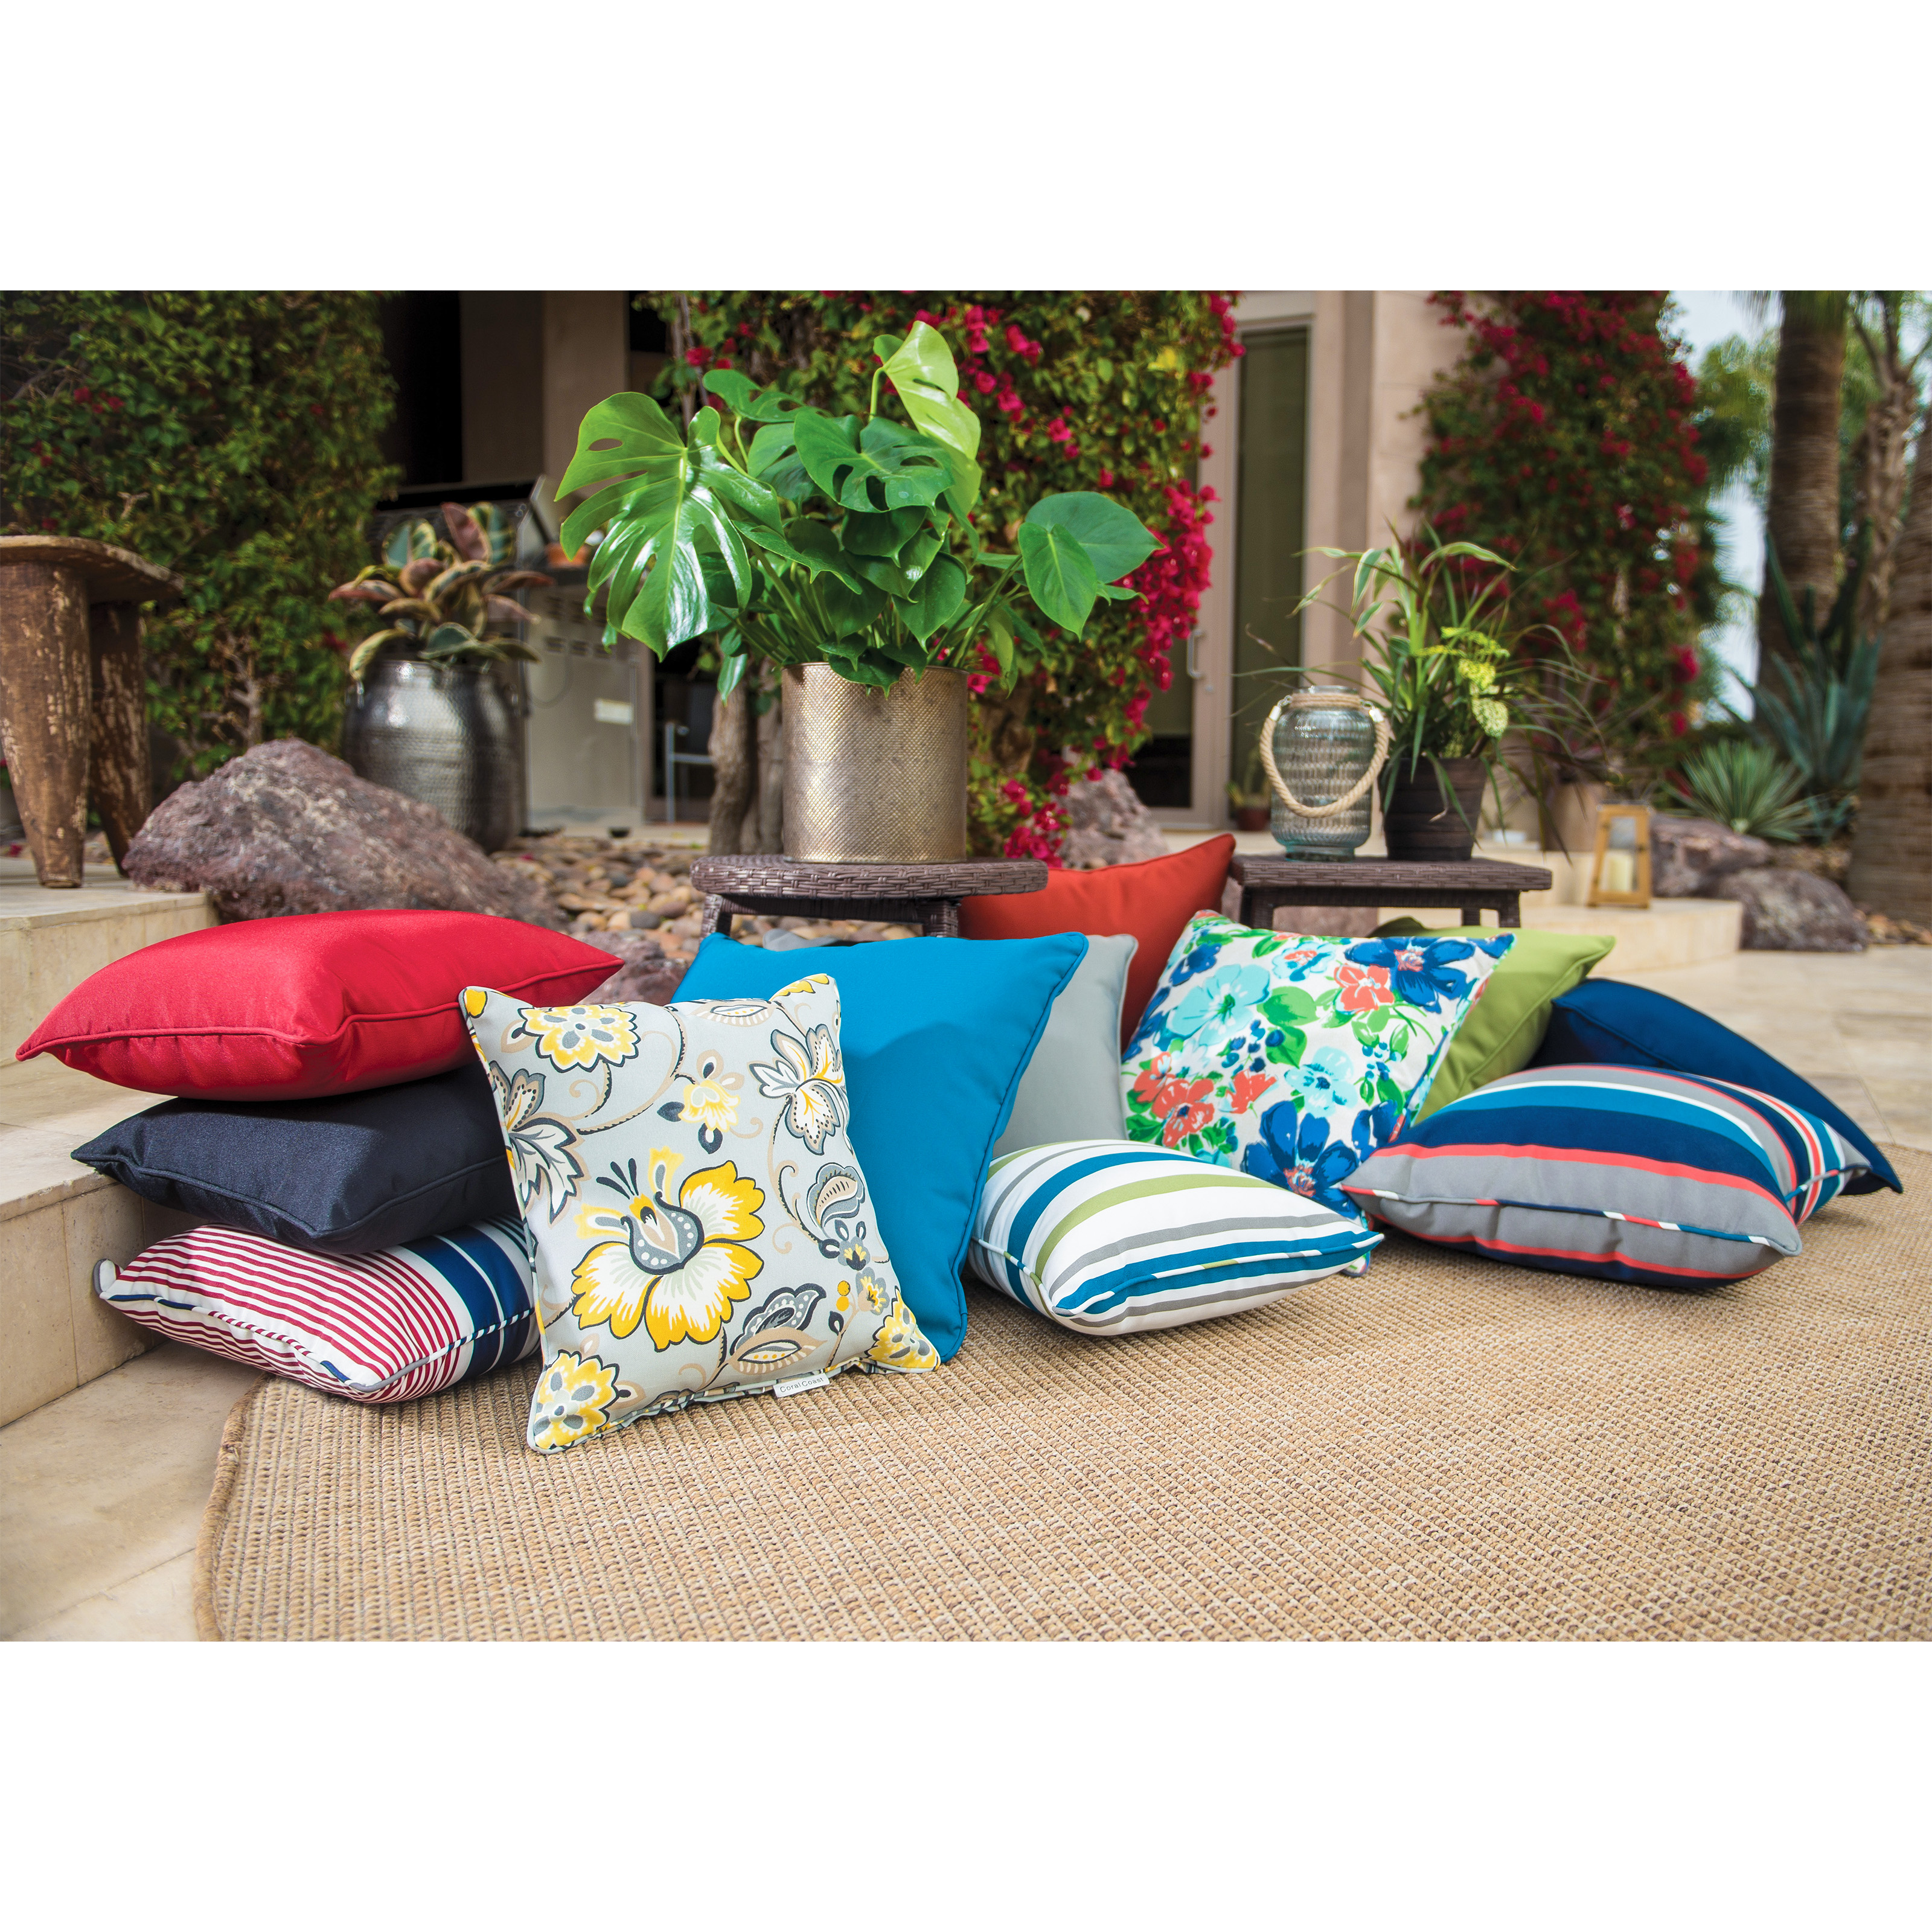 pillow one pier coastal themed outdoor at throw cushion beaded blanket starfish pillows gallery imports